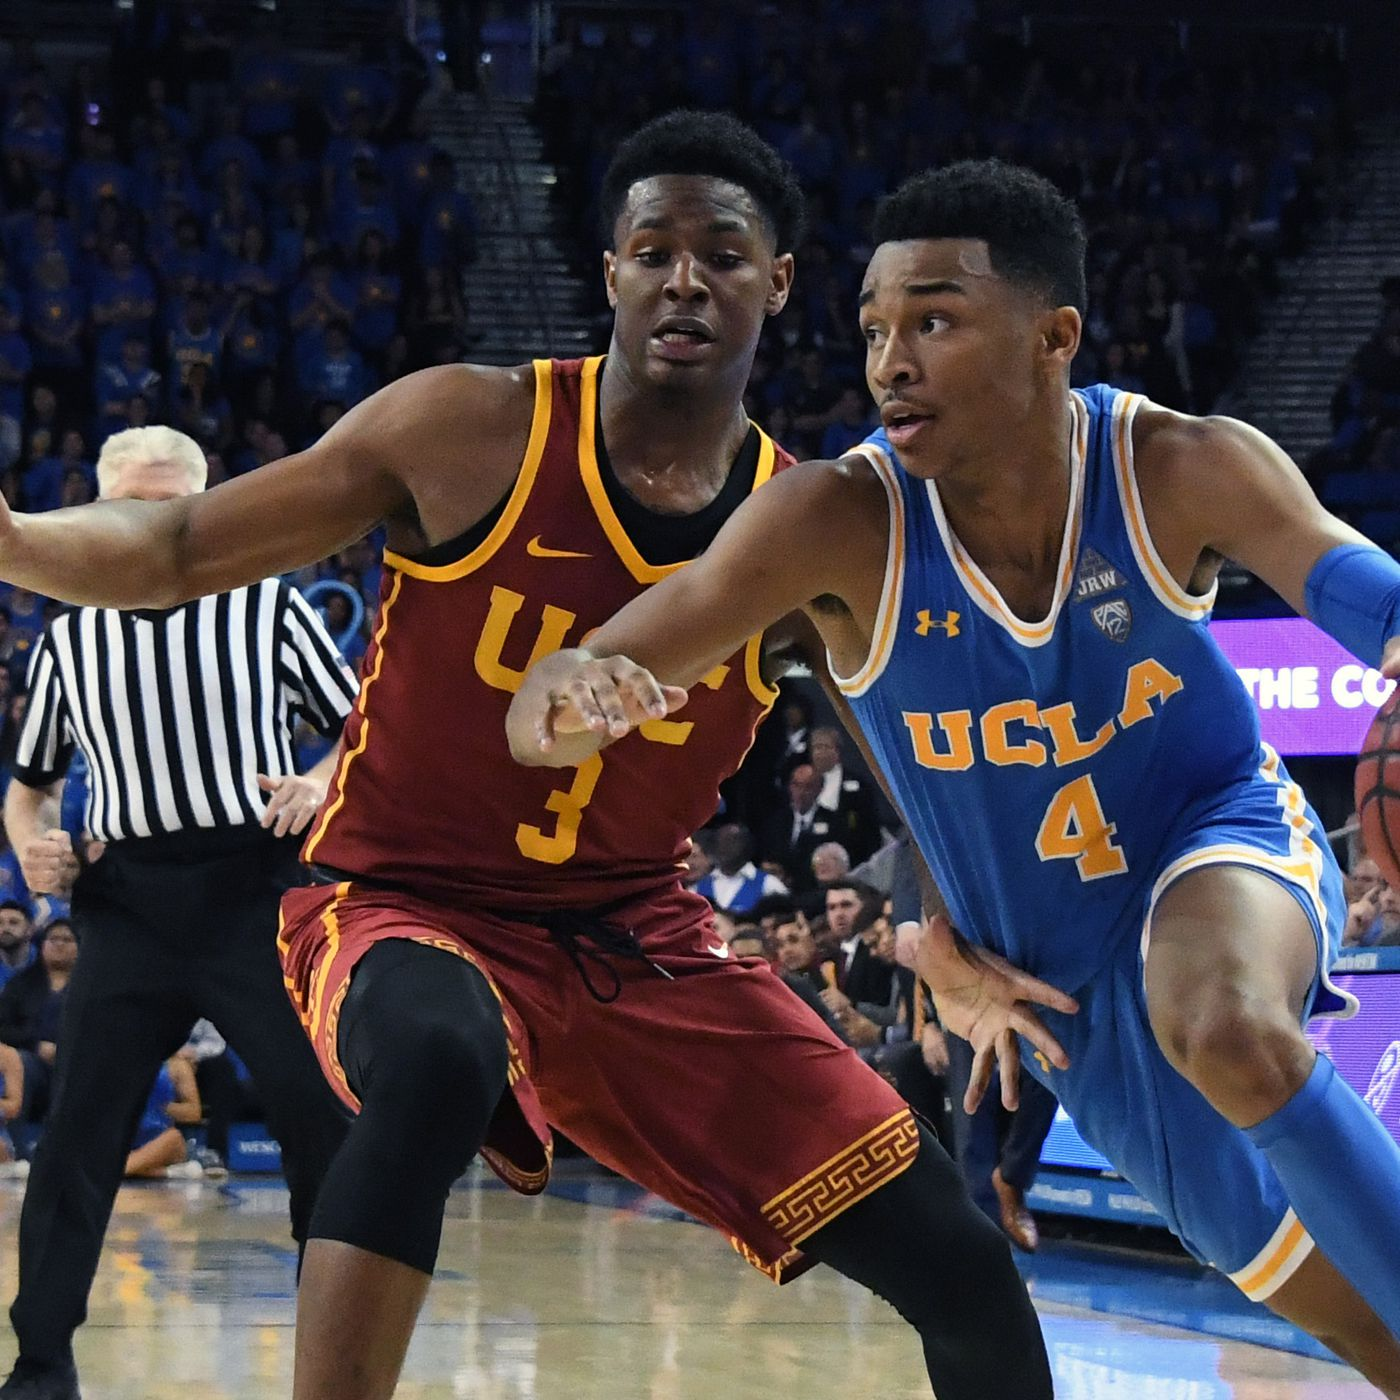 online retailer d022a f2f98 UCLA Basketball: Jaylen Hands Drafted 56th, Will Head to ...